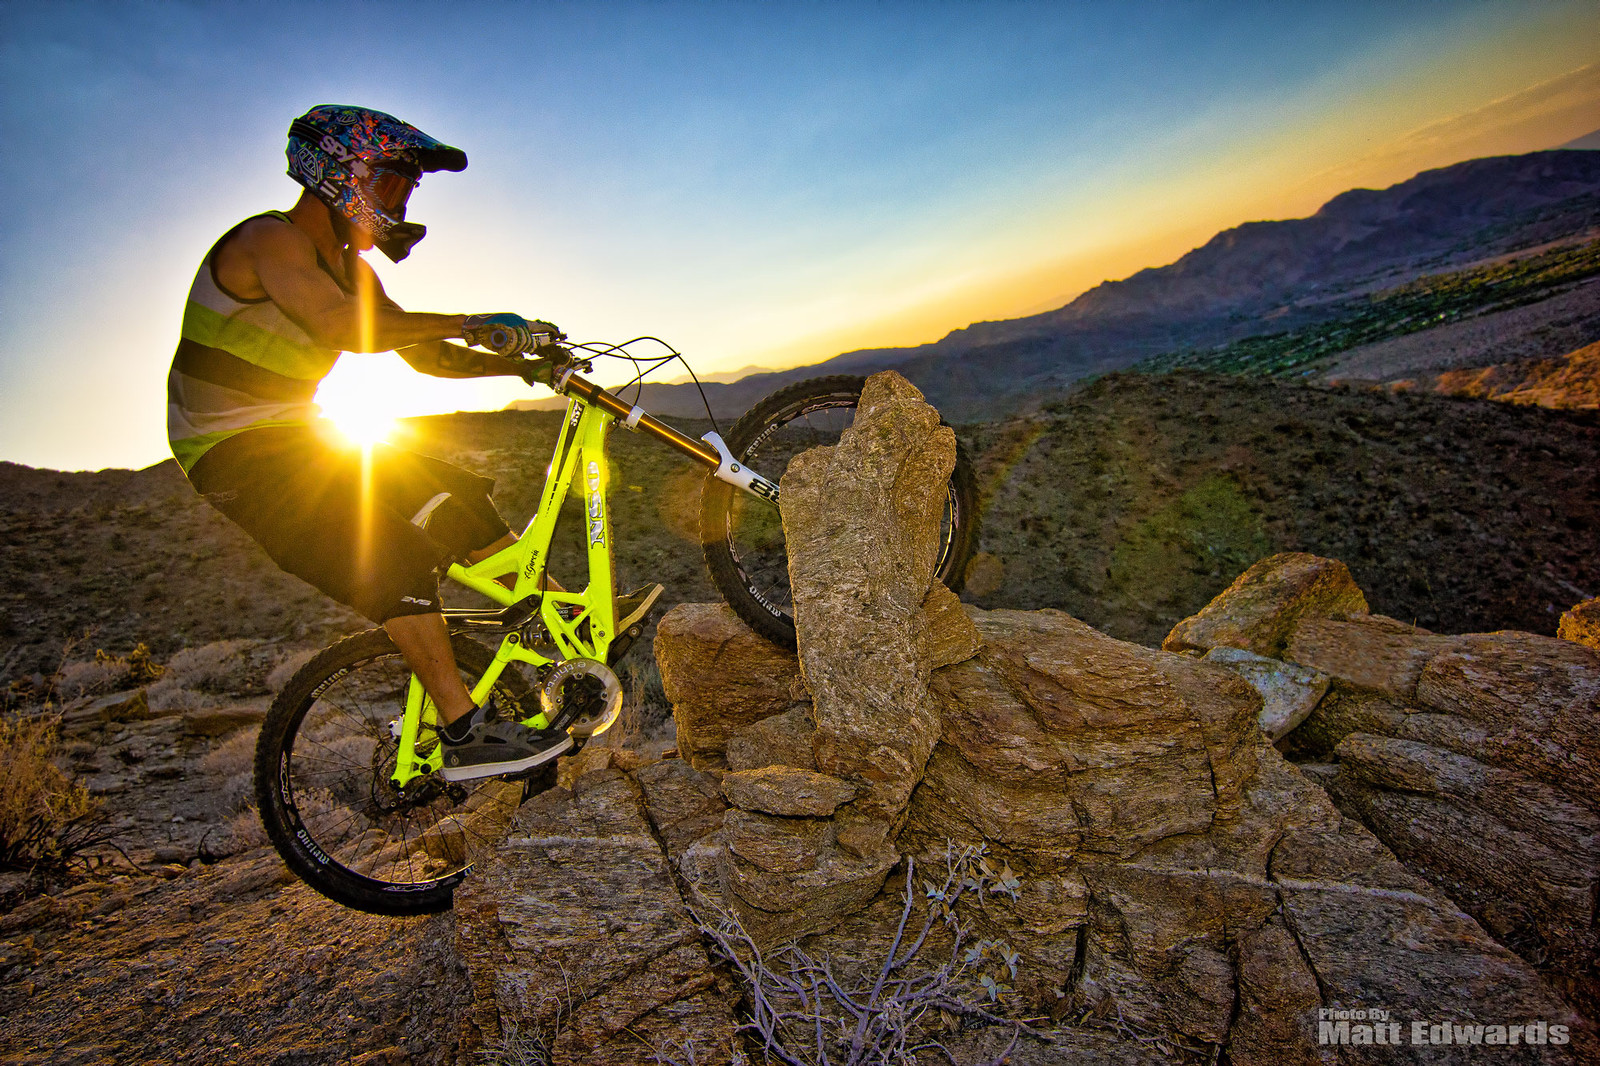 Alvino in the rock garden - EdwardsEntertainment - Mountain Biking Pictures - Vital MTB